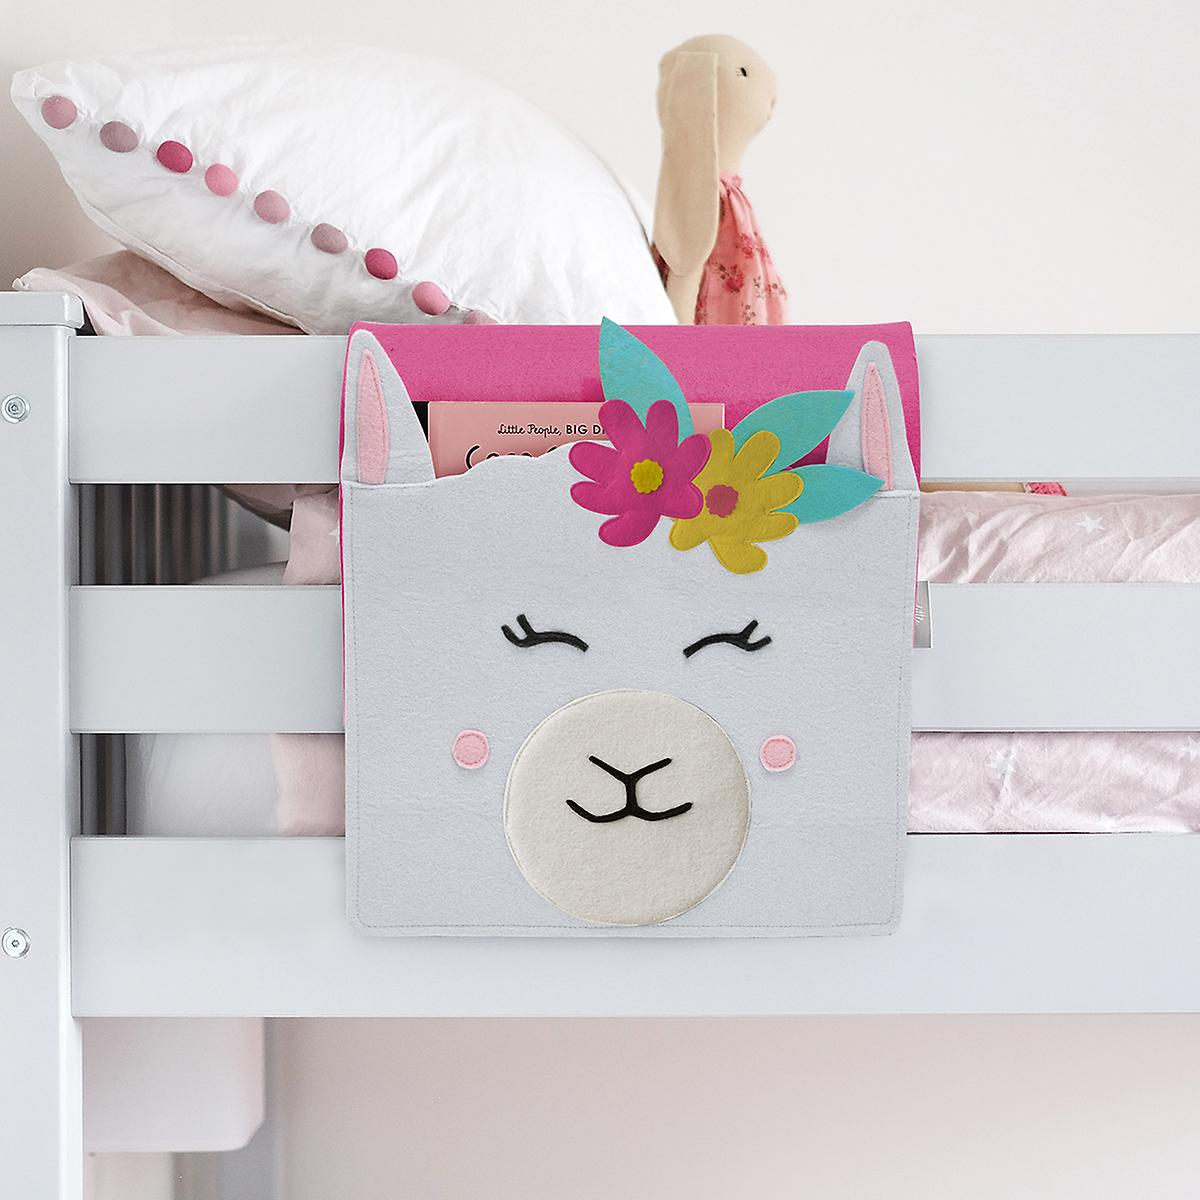 Little Stackers Llama Bed Pockets